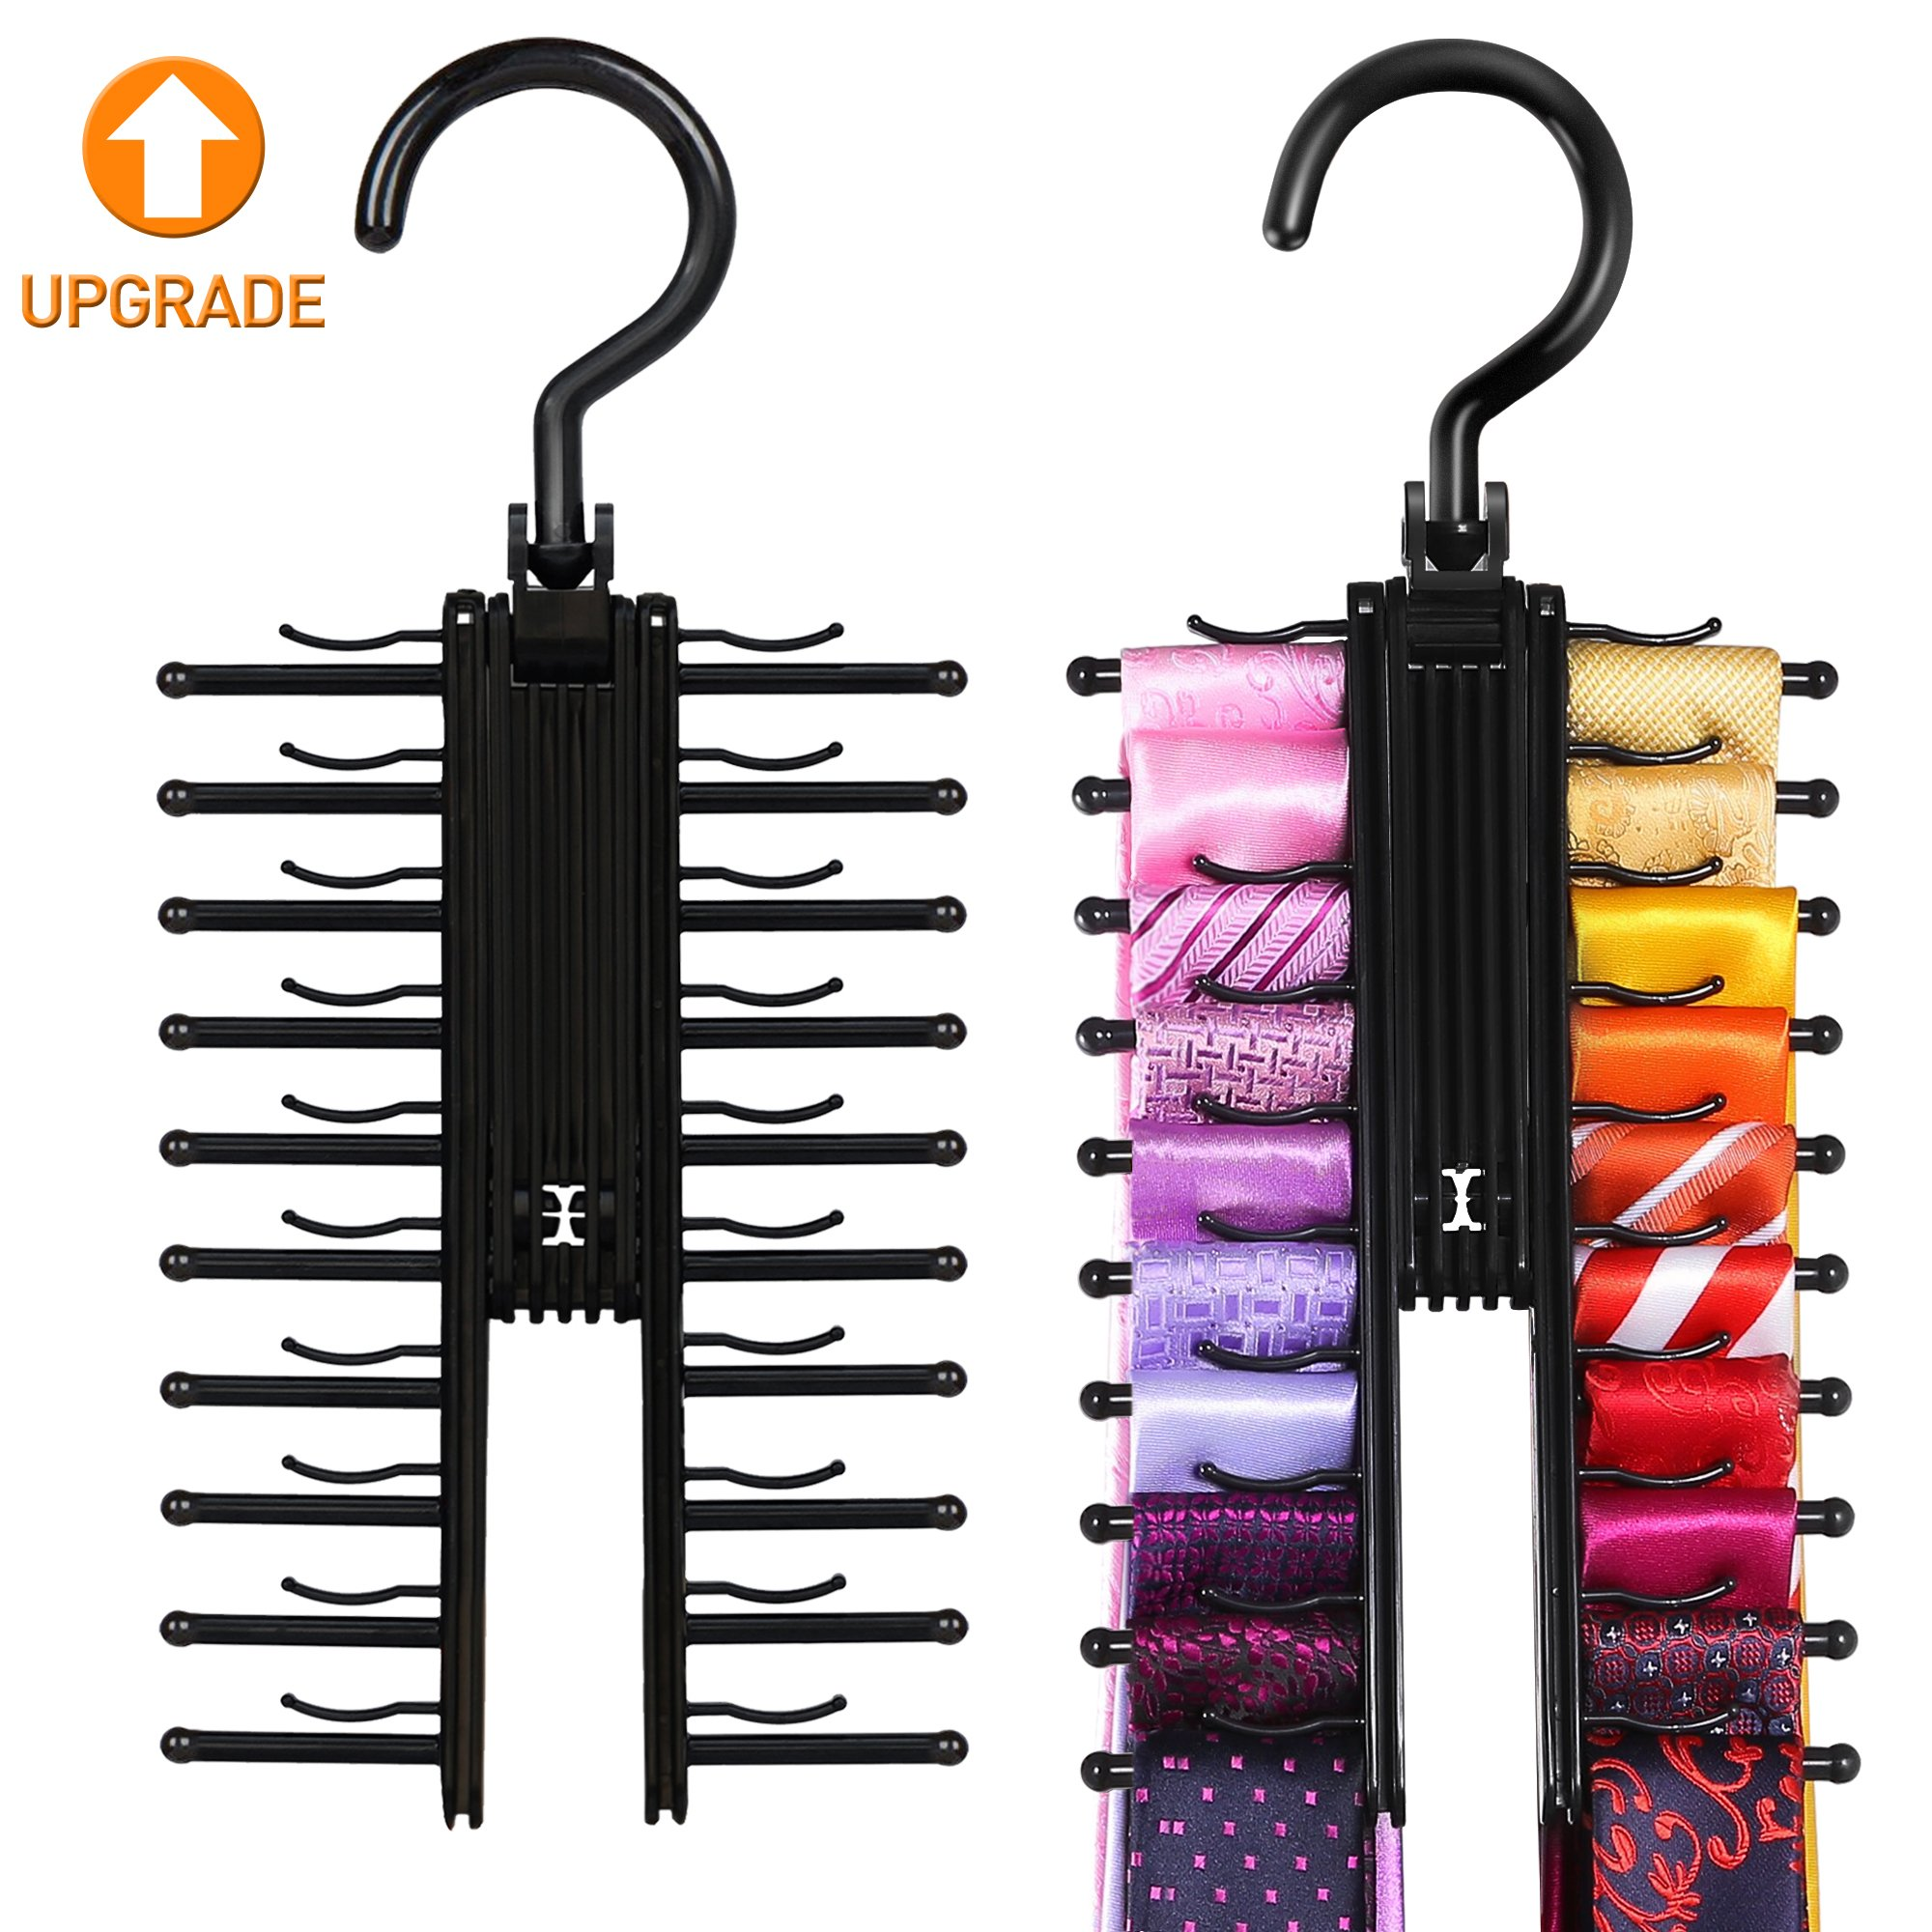 IPOW 2 PCS Upgraded Cross X Hangers, Black Tie Belt Rack Organizer Hanger  Non Slip Clips Holder With 360 Degree Rotation,Securely Up To 20 Ties